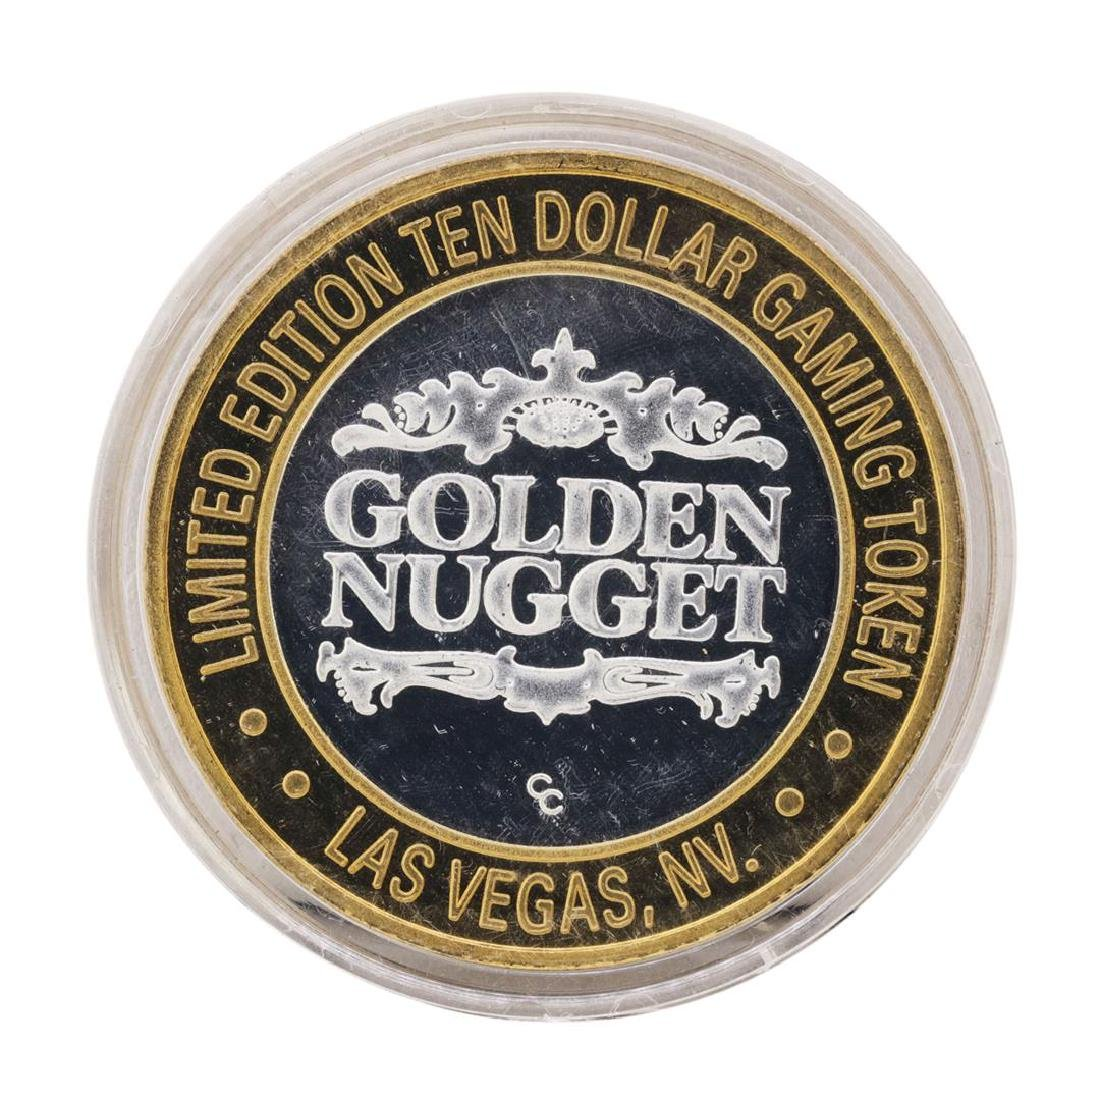 .999 Silver Golden Nugget Las Vegas, Nevada $10 Casino